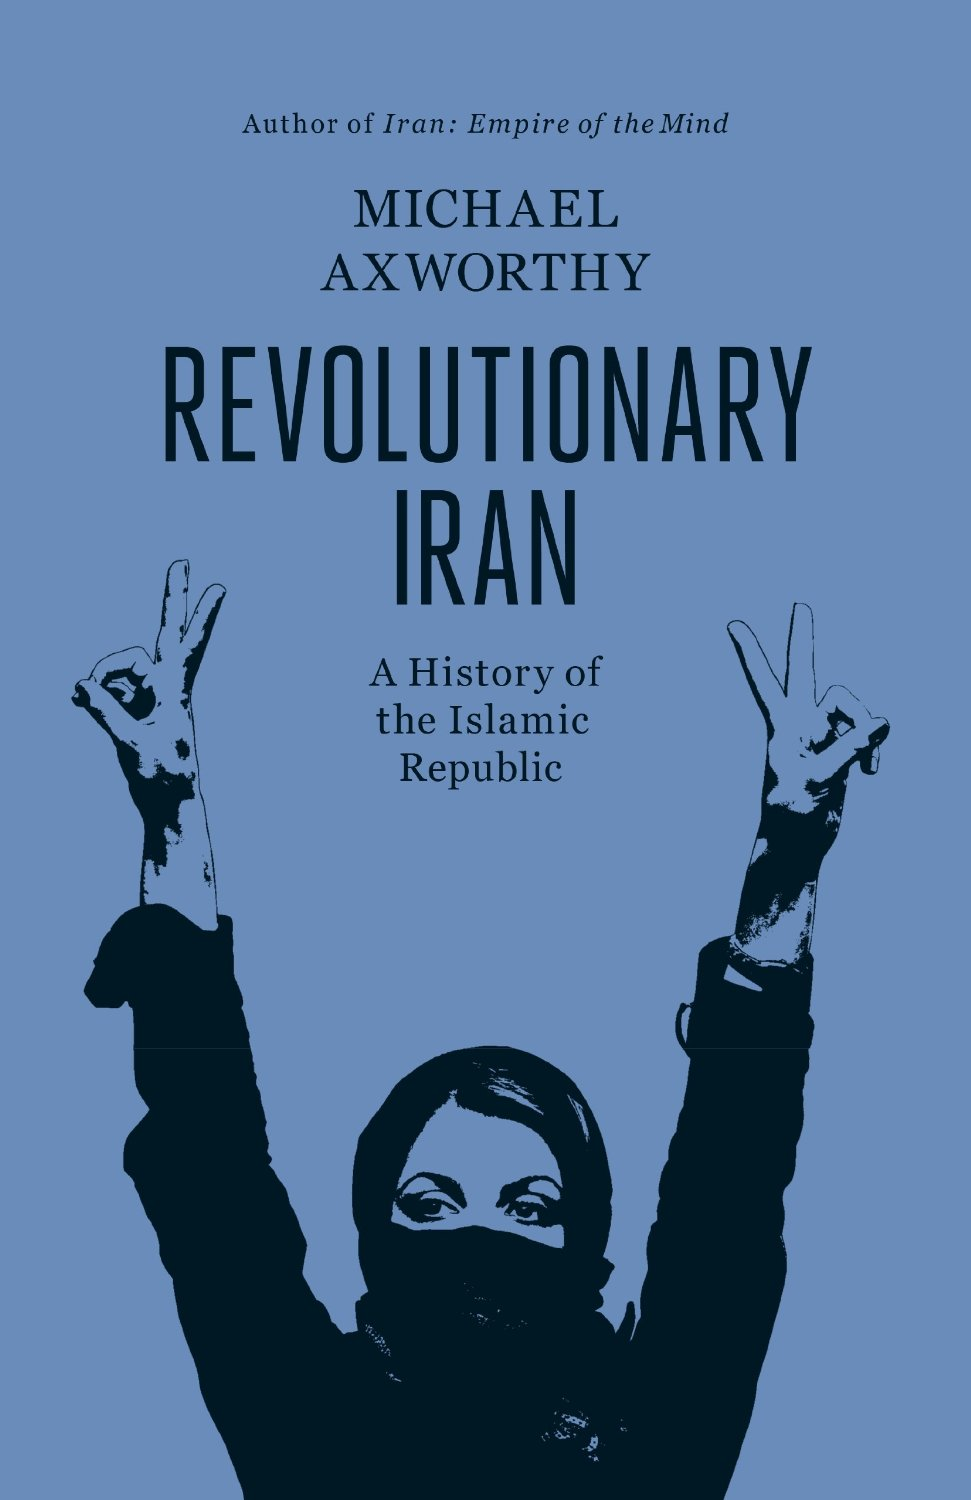 an introduction to the history of the iranian revolution Iranian revolution introduction iran has always, it seems, been the breeding ground for some kind of political upheaval or another in recent times, back in 1979, there was a major revolution which was, in some ways, similar to the revolution we are seeing today.